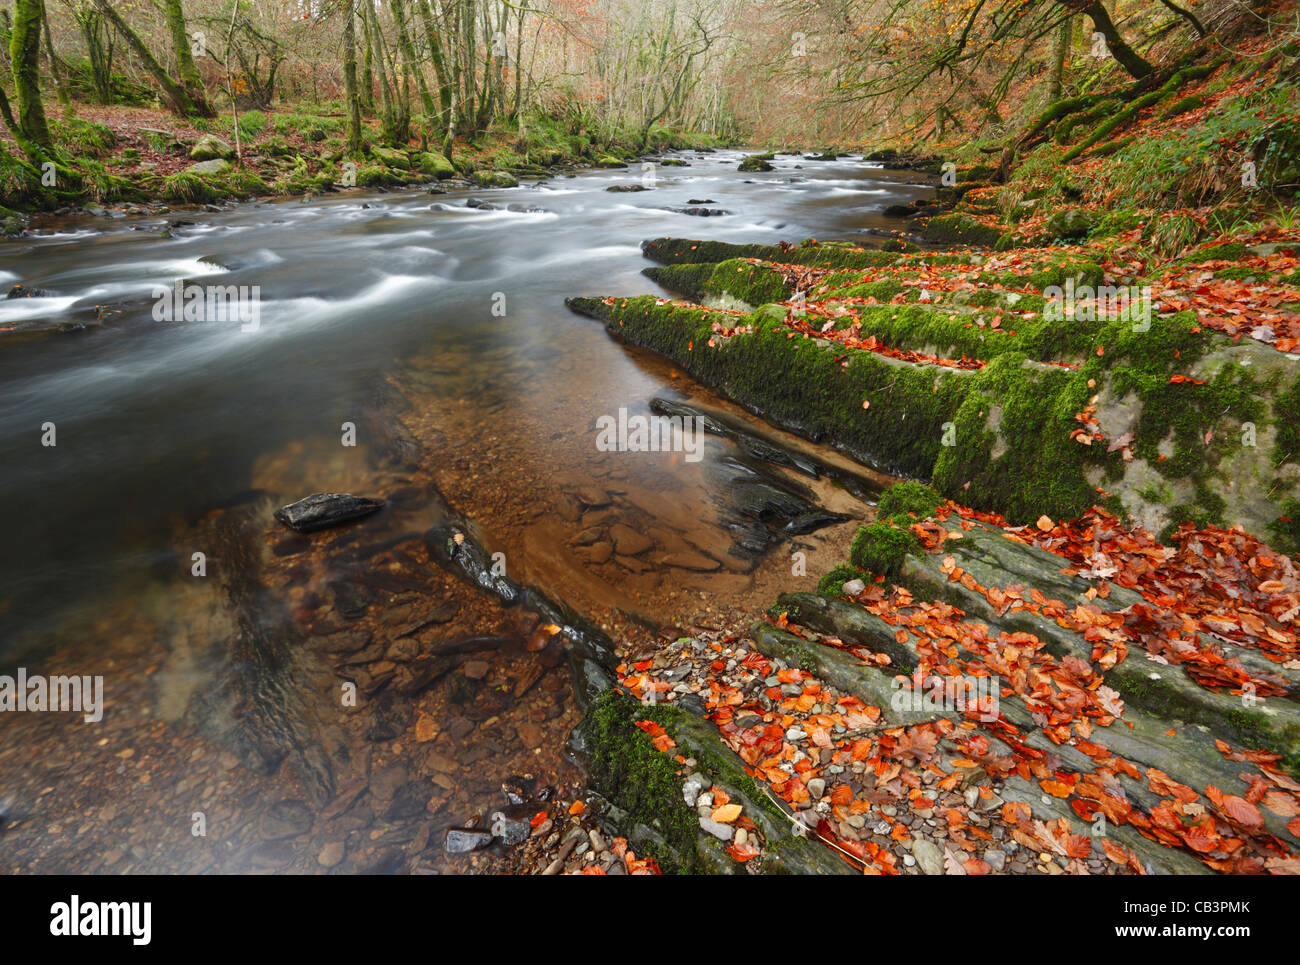 The River Barle near Tarr Steps. Autumn. Exmoor National Park. Somerset. England. UK. - Stock Image